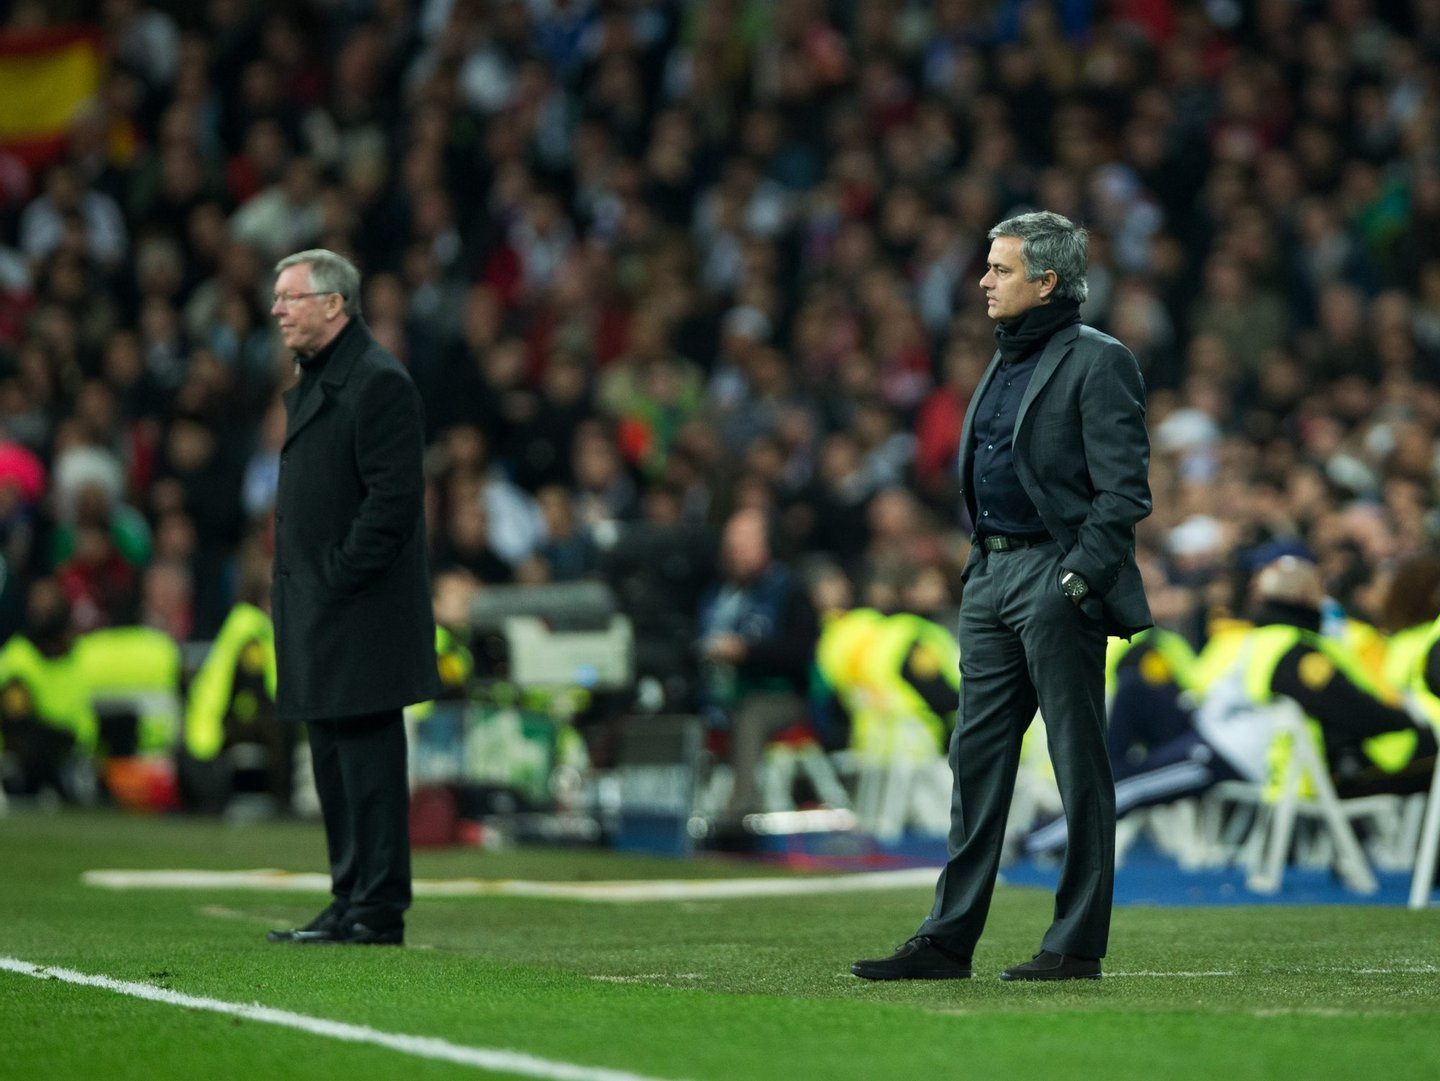 MADRID, SPAIN - FEBRUARY 13: Head coach Jose Mourinho (R) of Real Madrid stands besides Sir Alex Ferguson, manager of Manchester United, during the UEFA Champions League Round of 16 first leg match between Real Madrid and Manchester United at Estadio Santiago Bernabeu on February 13, 2013 in Madrid, Spain. (Photo by Jasper Juinen/Getty Images)